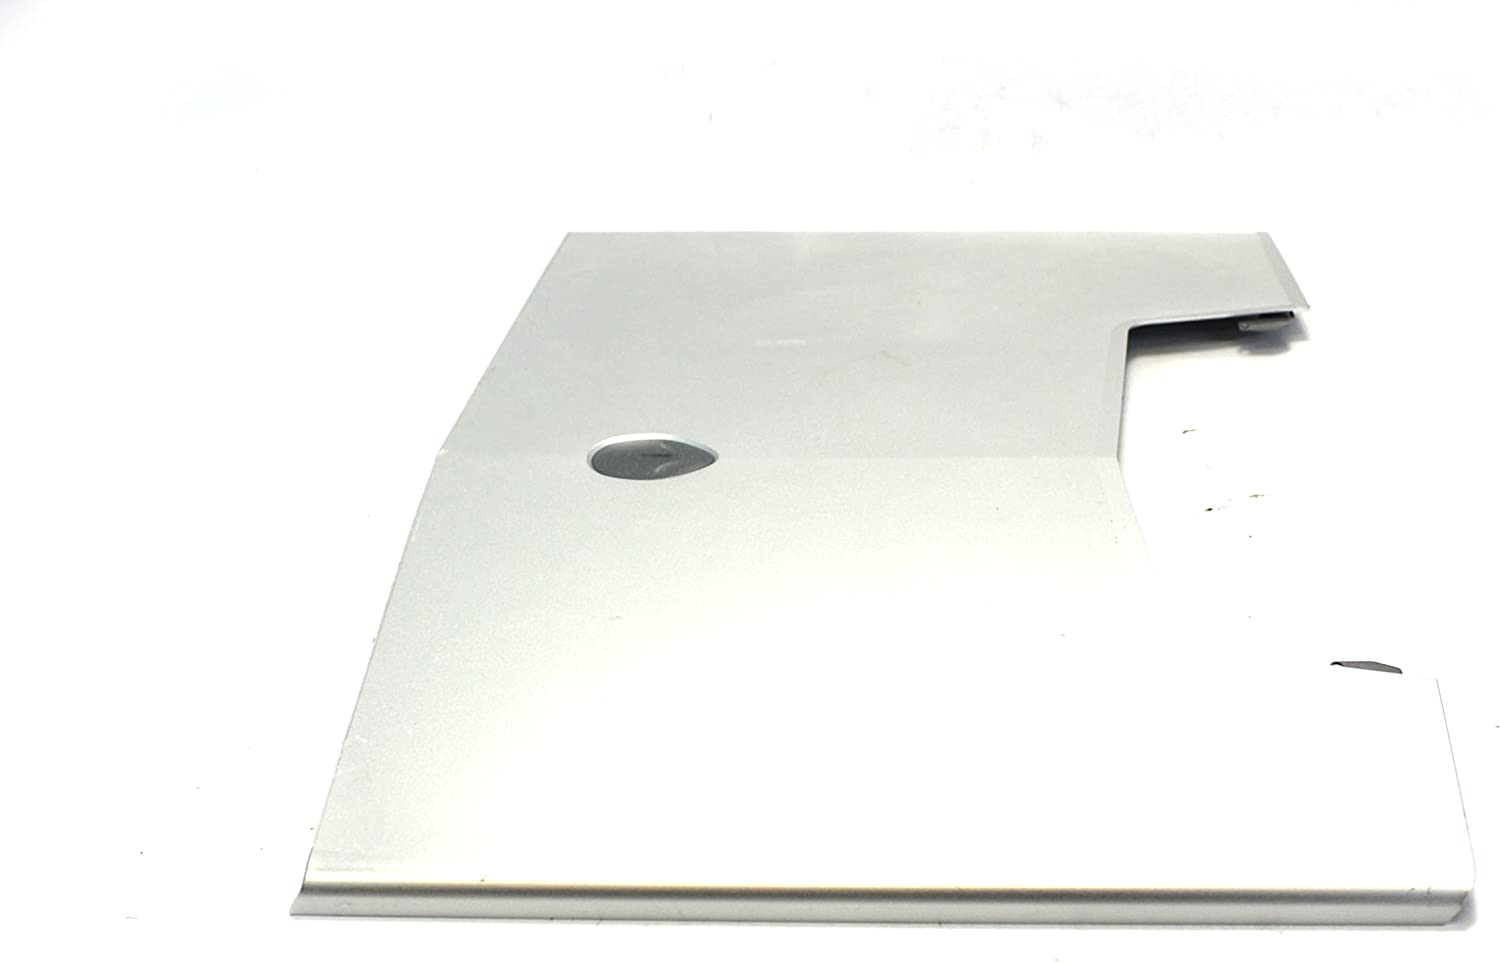 68F75 Y750M Alienware M11xR2 Bottom Access Panel Door Cover Gray